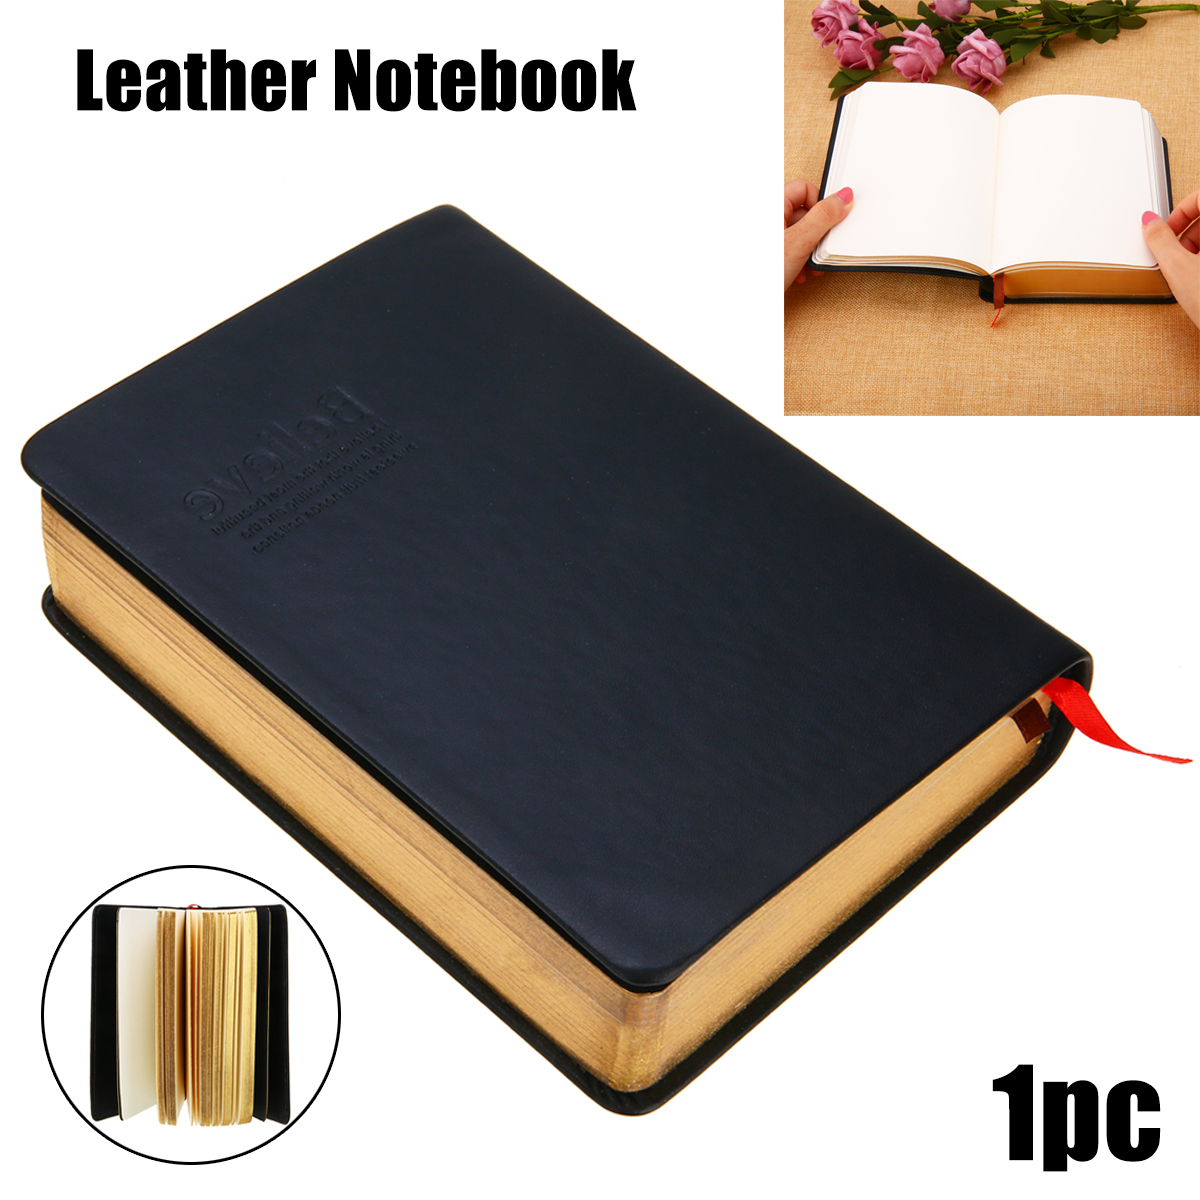 1pcs Vintage Thick Paper Notebook Journal Bible Diary Book Sketchbook Leather Cover School Office Stationery Supplies ruize vintage diary thick notebook bible book leather agenda gold edge blank paper note book office school supplies stationery